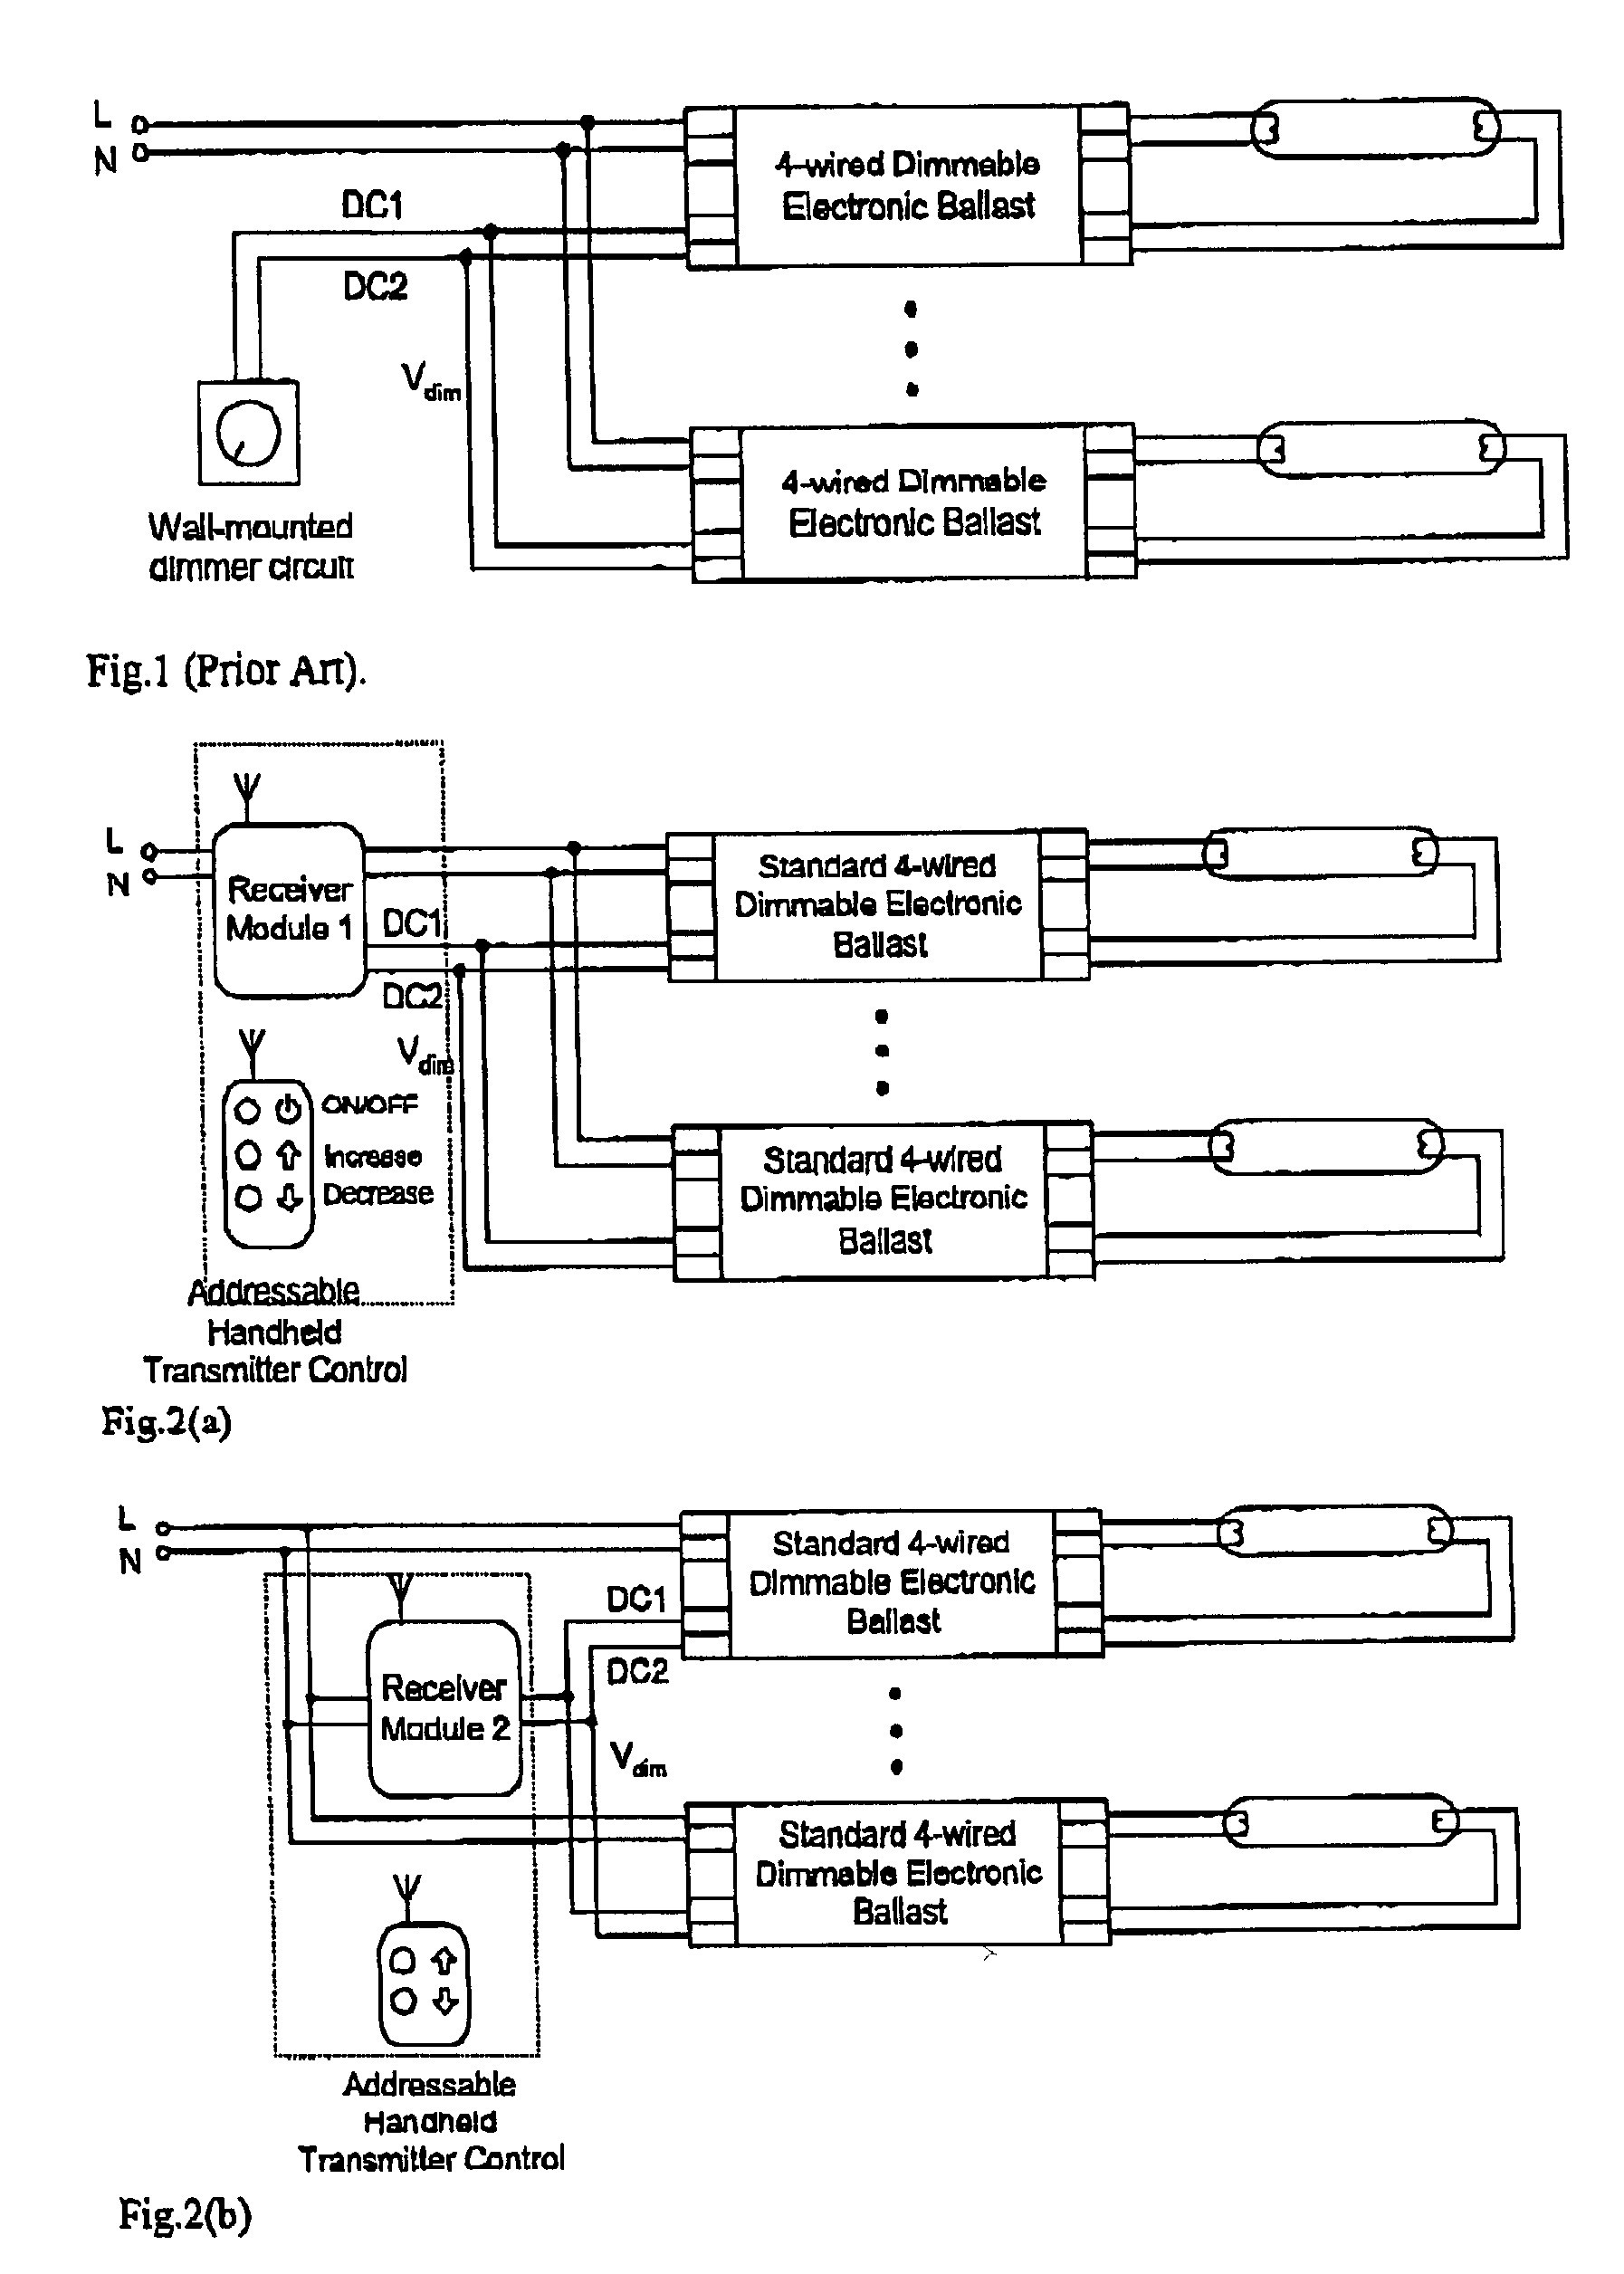 Leviton Dimmers Wiring Diagram Inspirational 3 Way Wiring Diagrams Diagram Of Leviton Dimmers Wiring Diagram